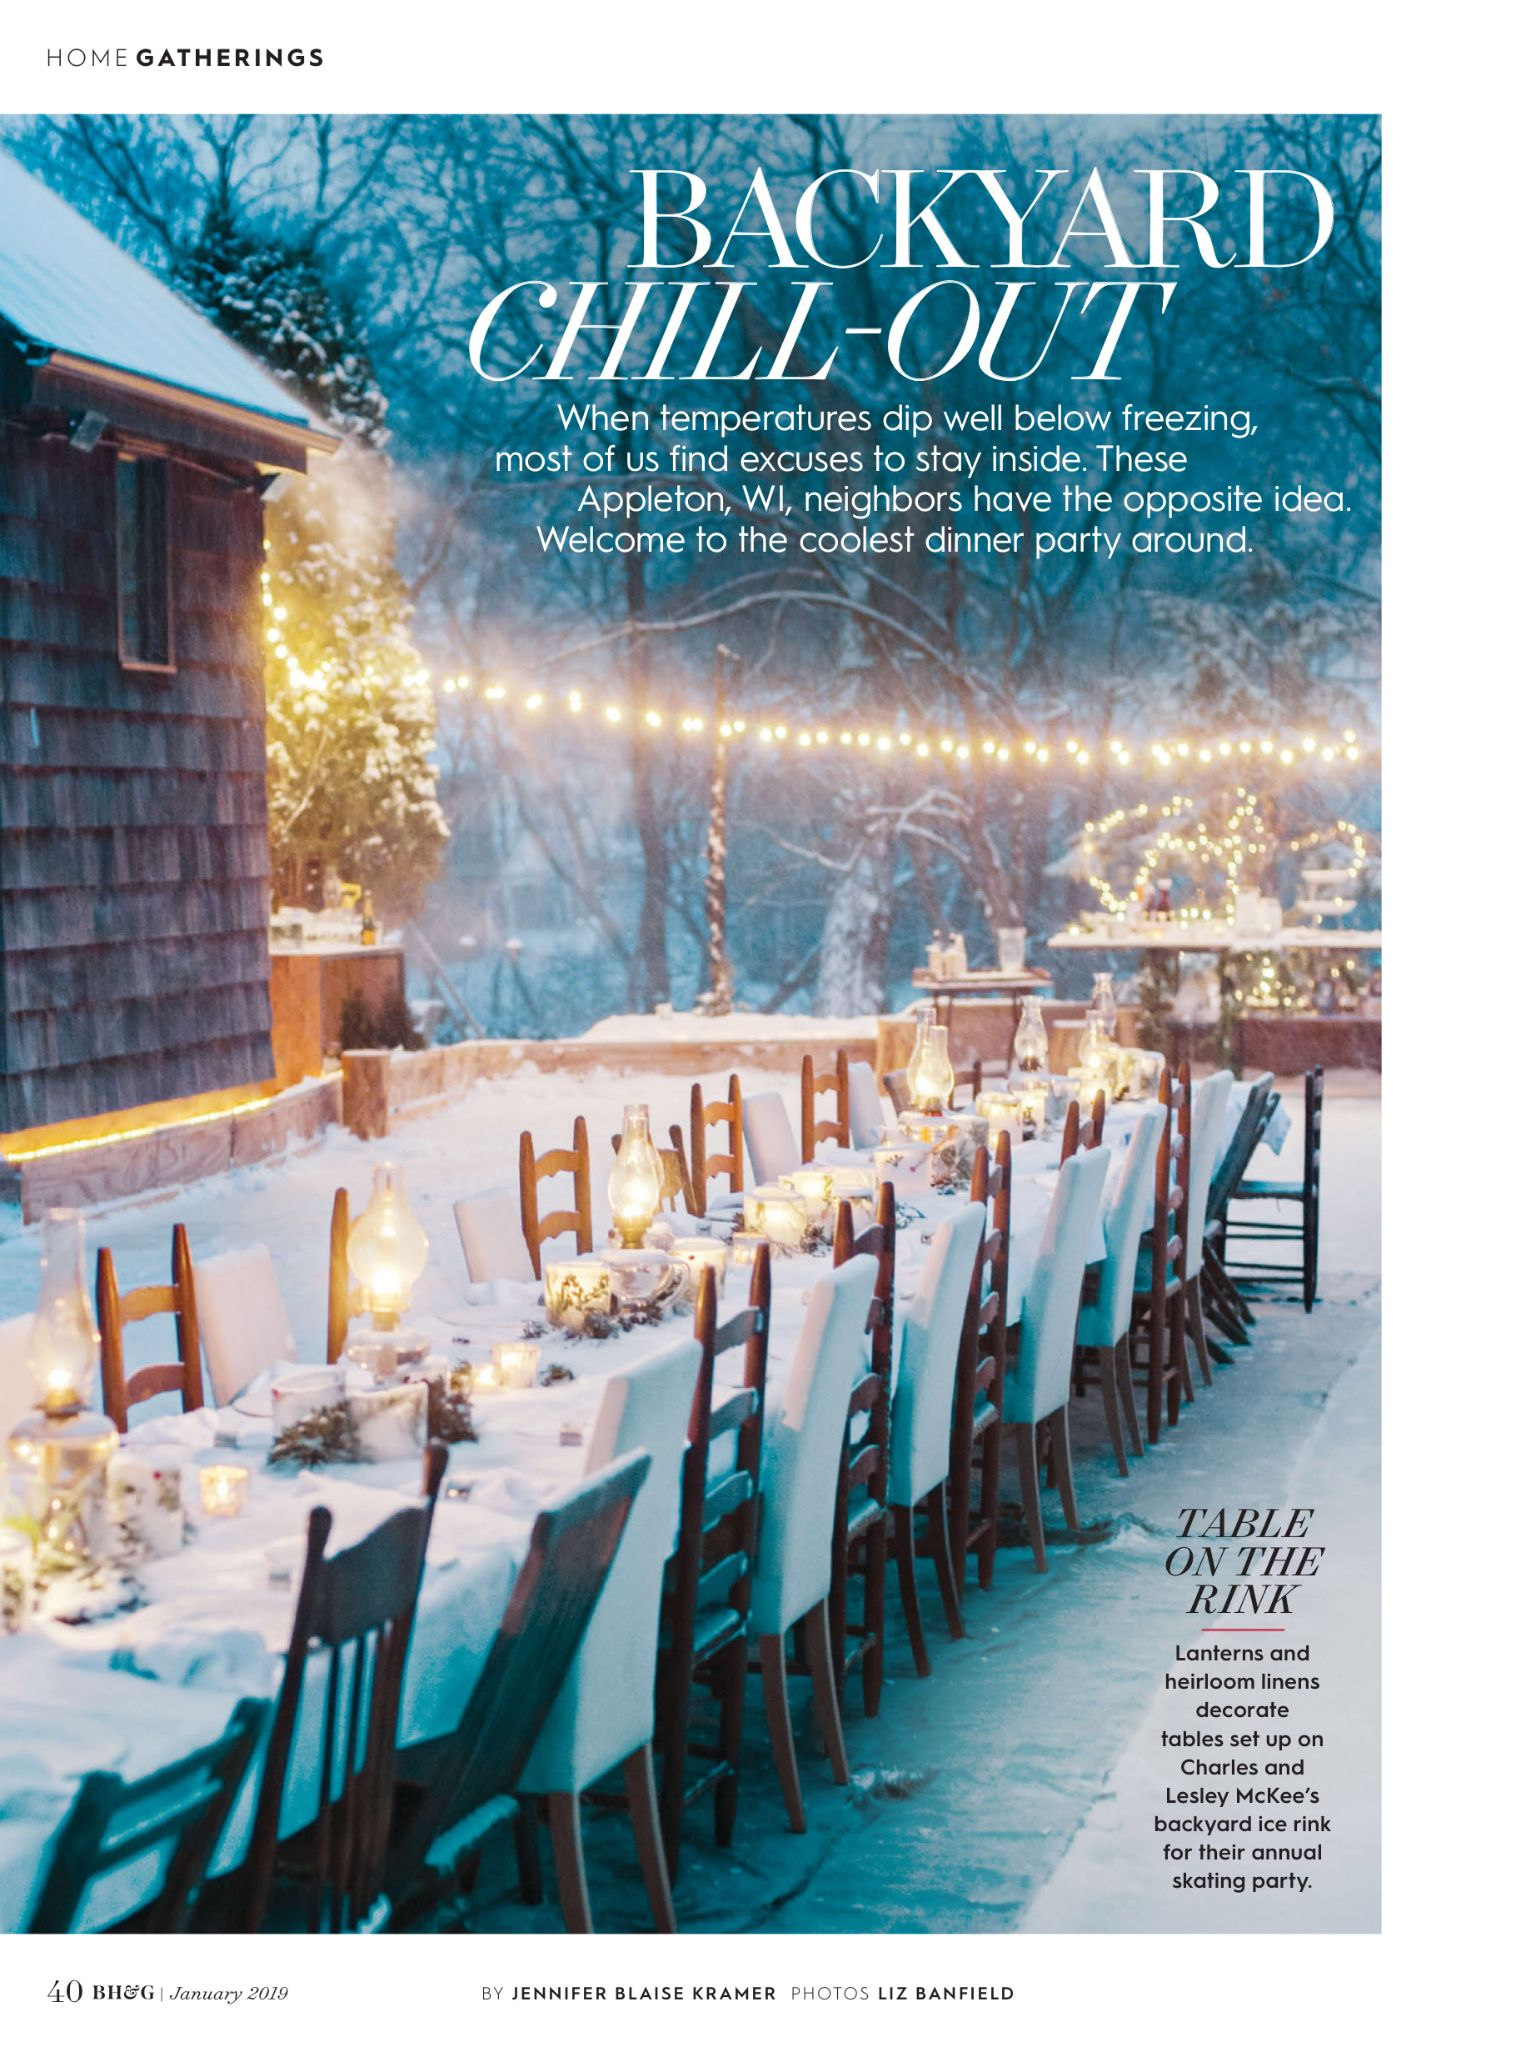 9f65d9608fe92358fd007508d39a3869 - January 2019 Better Homes And Gardens Magazine